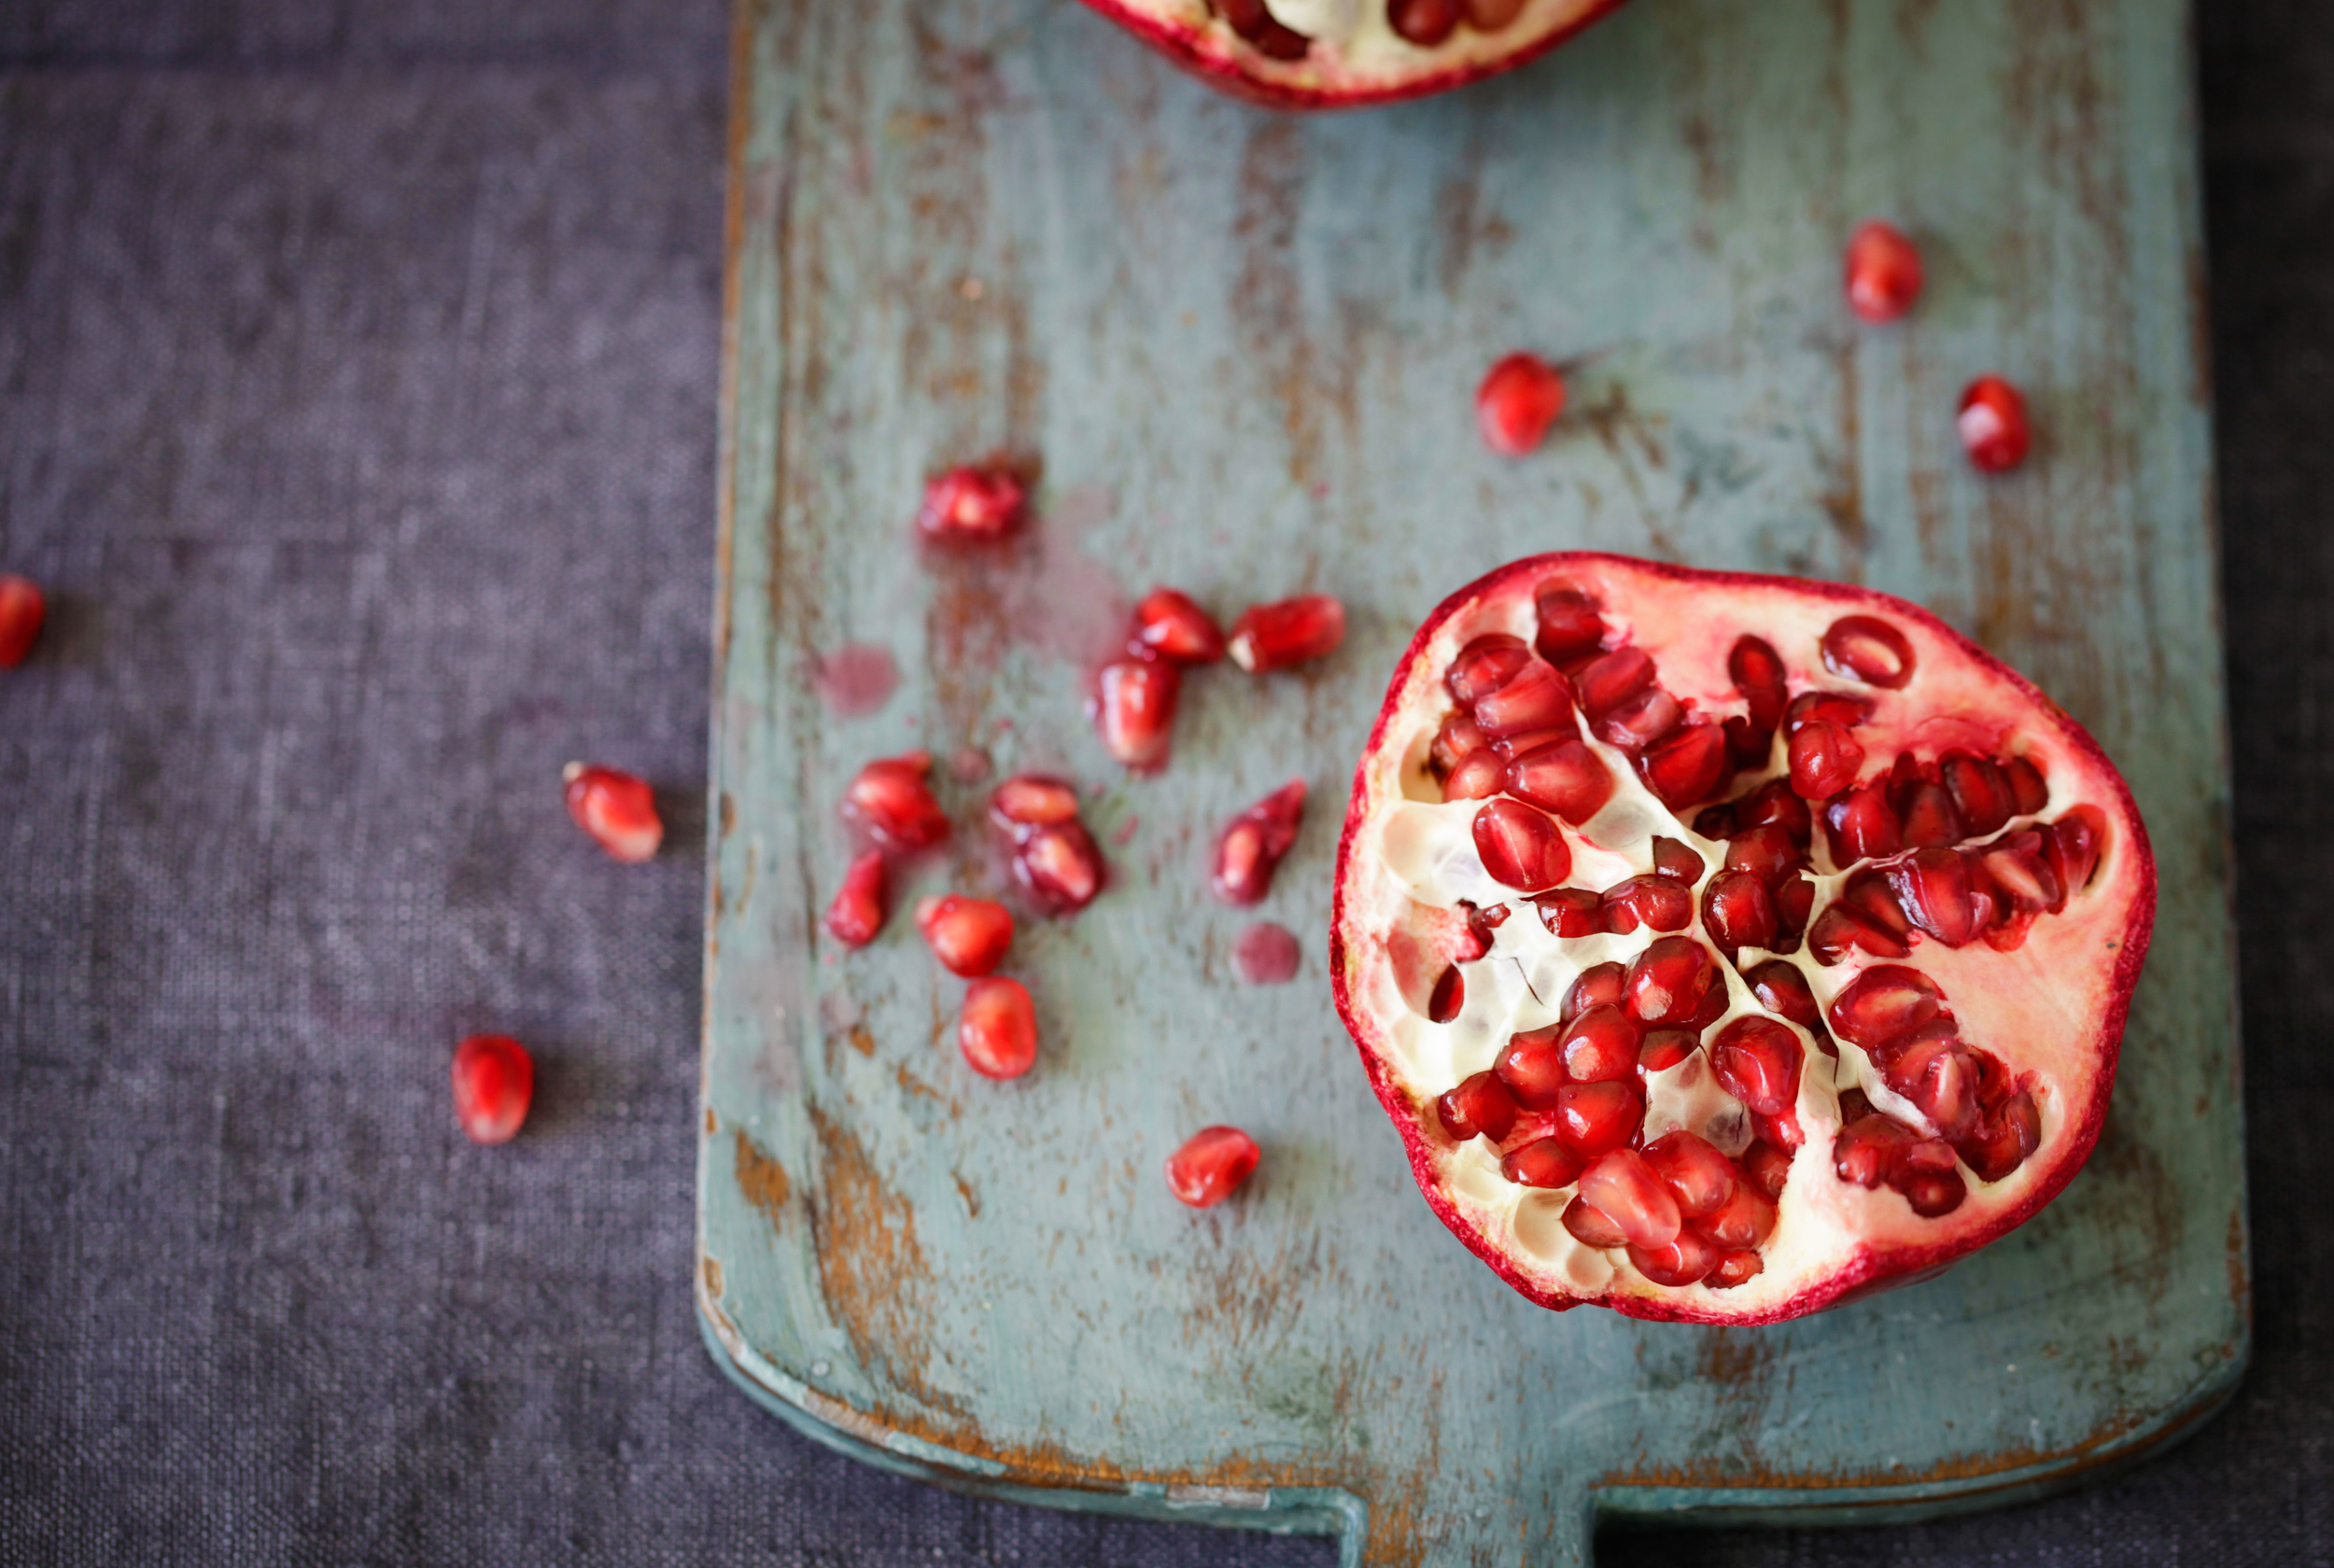 Pomegranate Toner